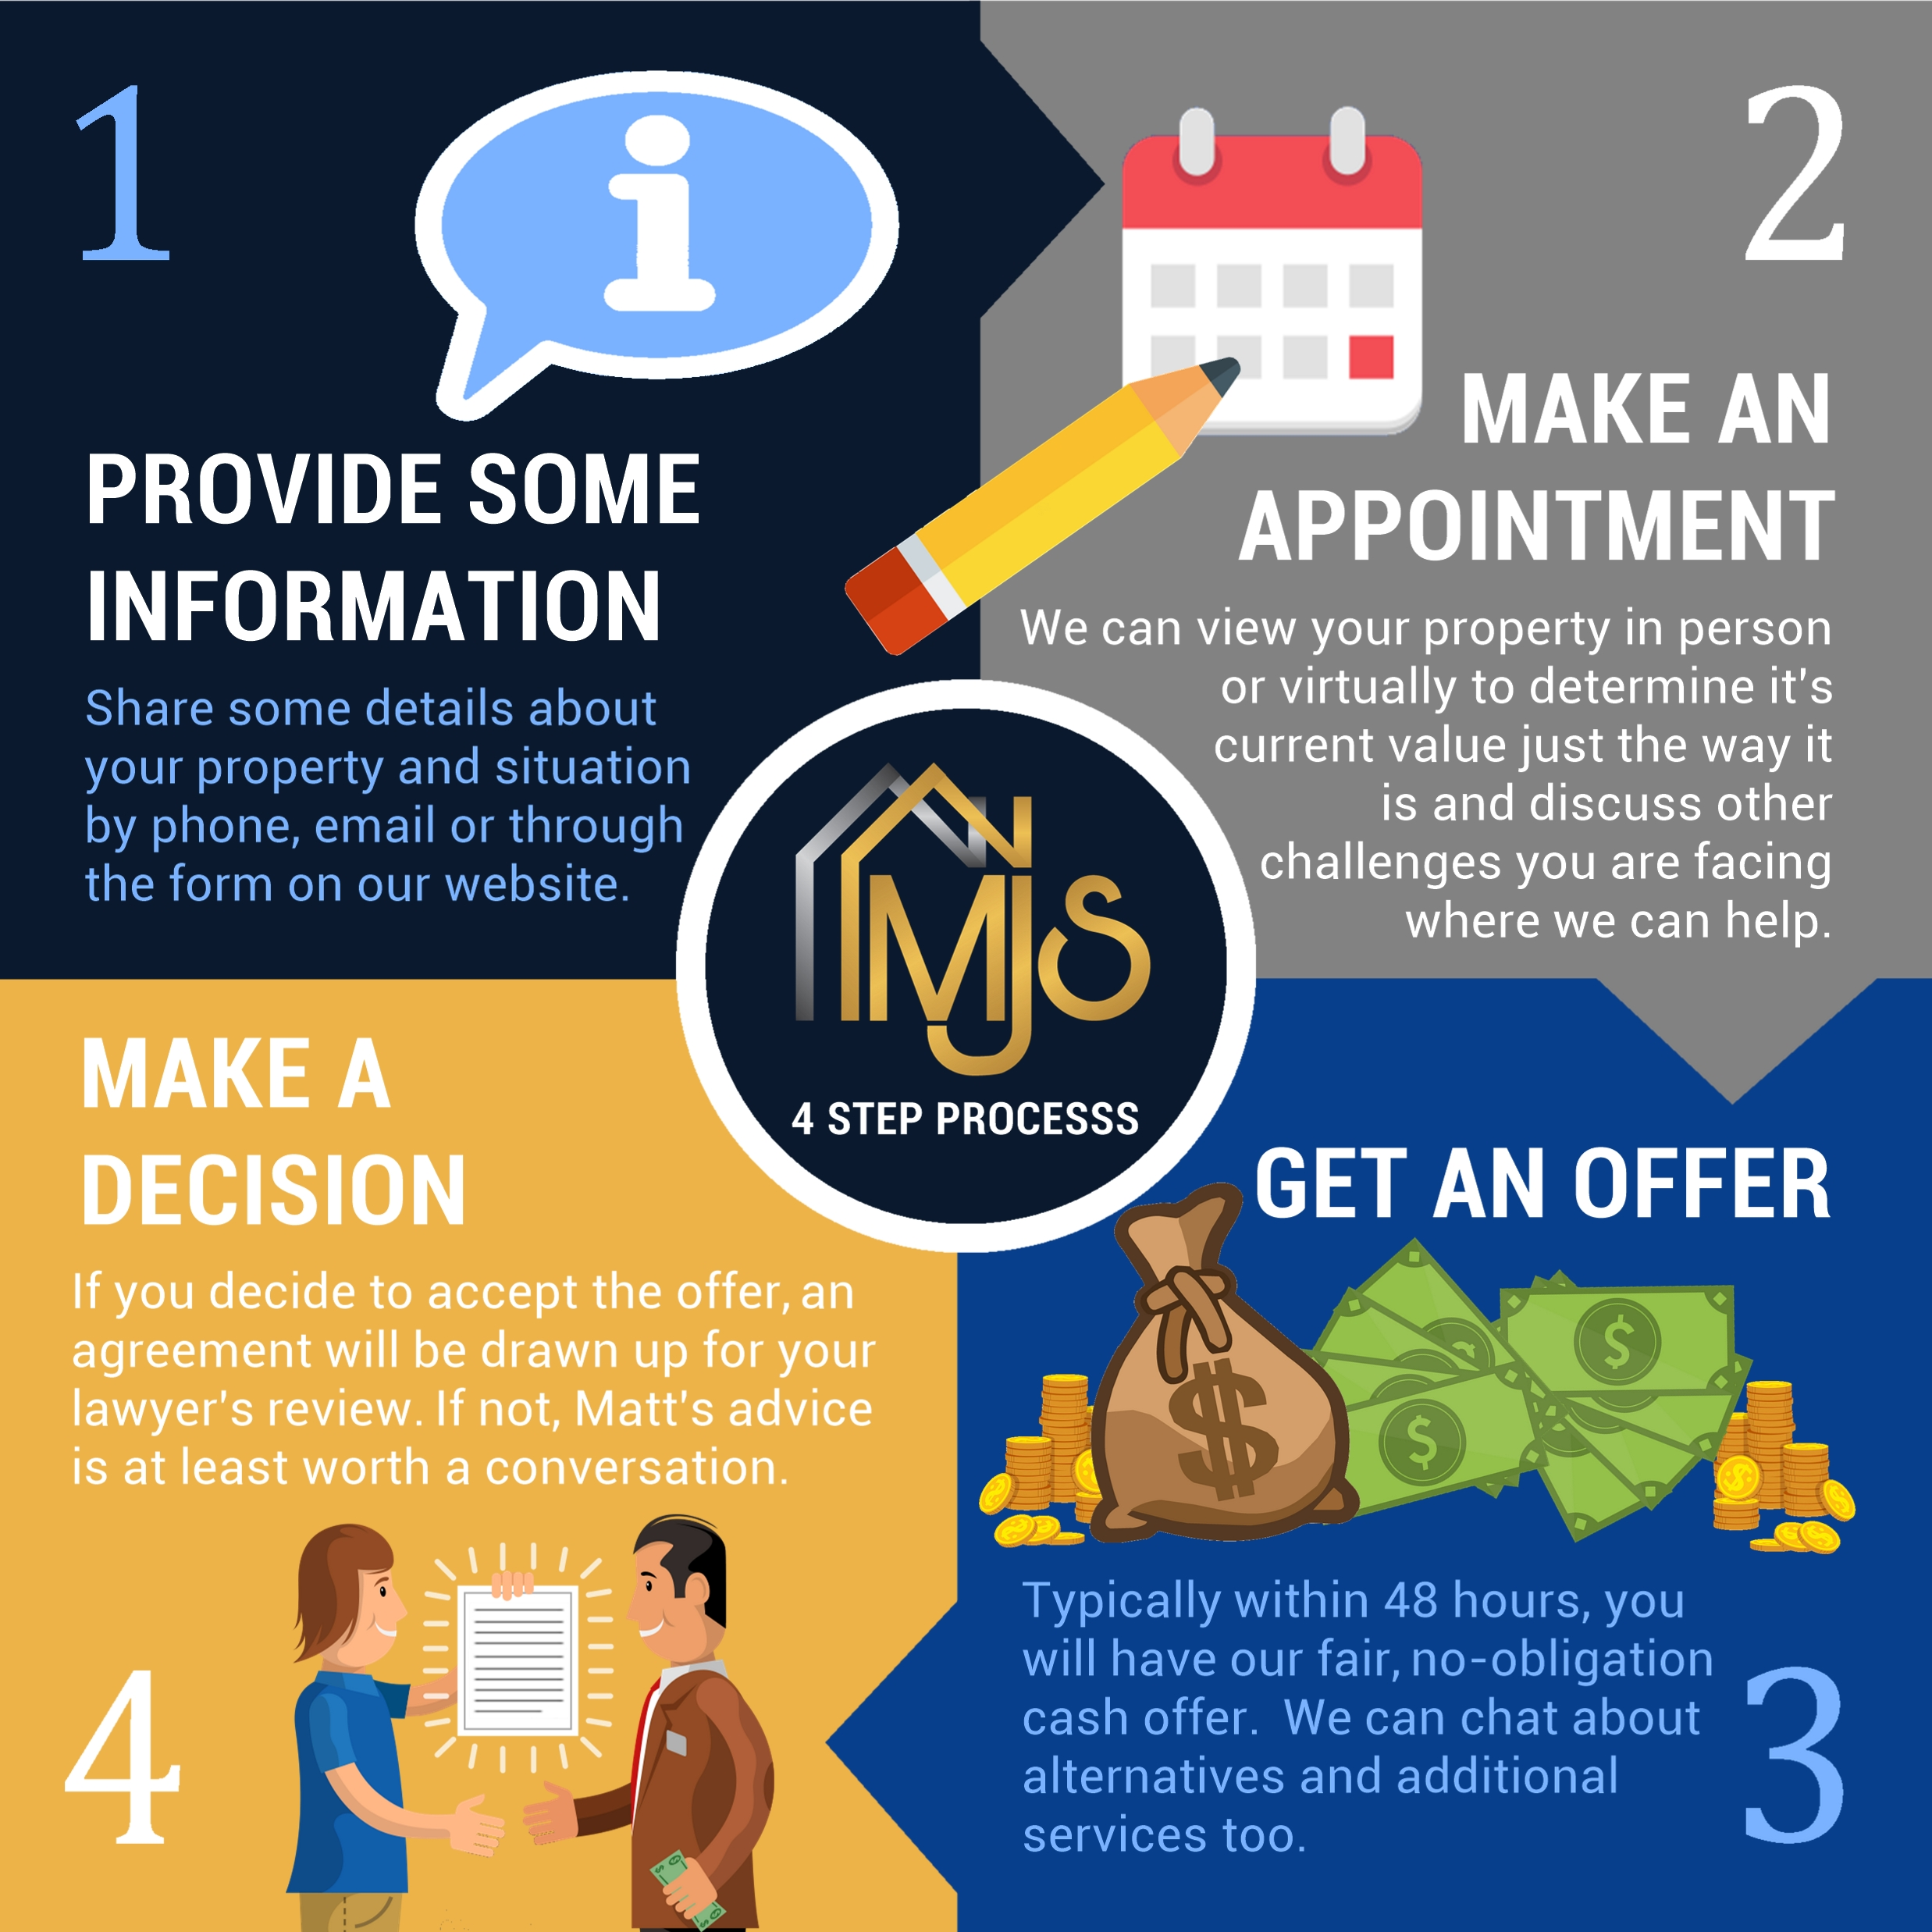 Info graphic of 4 step process of how a private sale works with MJS Properties. 1 – provide some information. 2 – make an appointment. 3 – make a decision. 4 – get an offer.